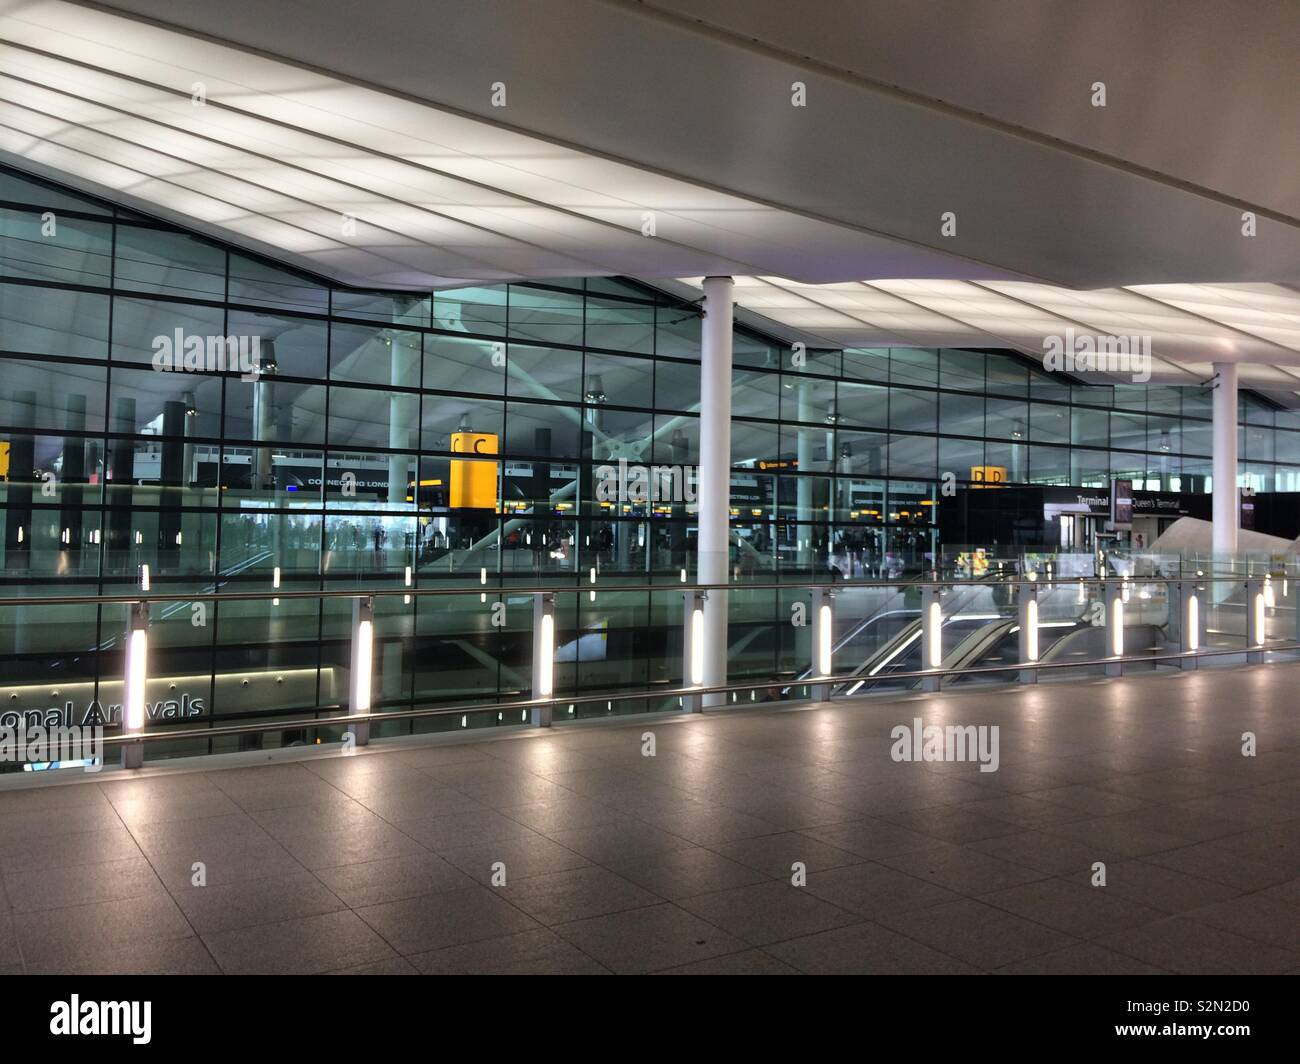 London Heathrow Terminal 2 (The Queen's Building), Hillingdon, London. - Stock Image